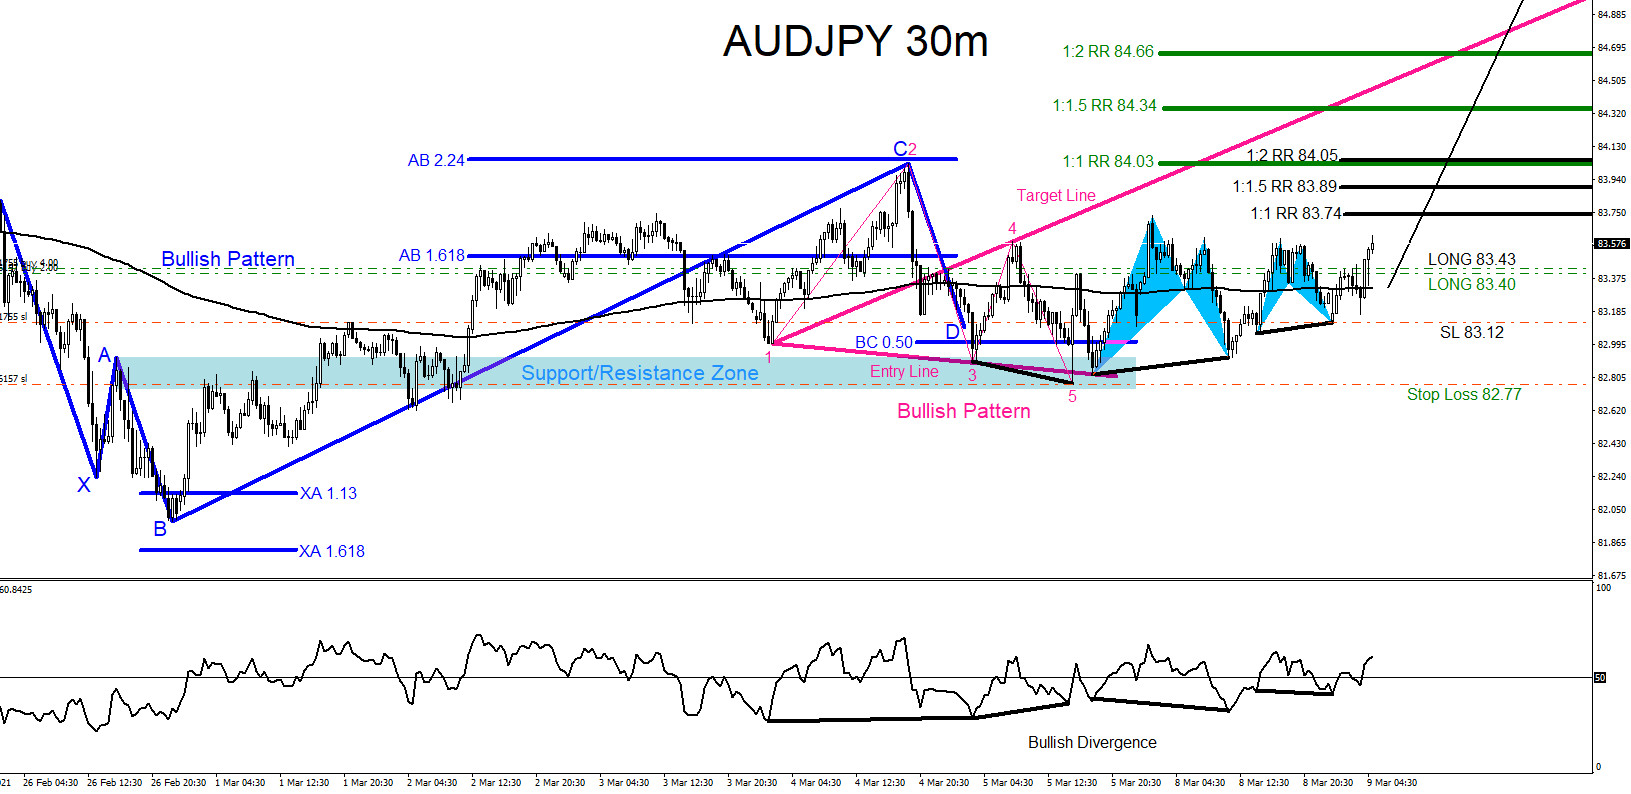 AUDJPY : Bullish Market Patterns Calling the Move Higher